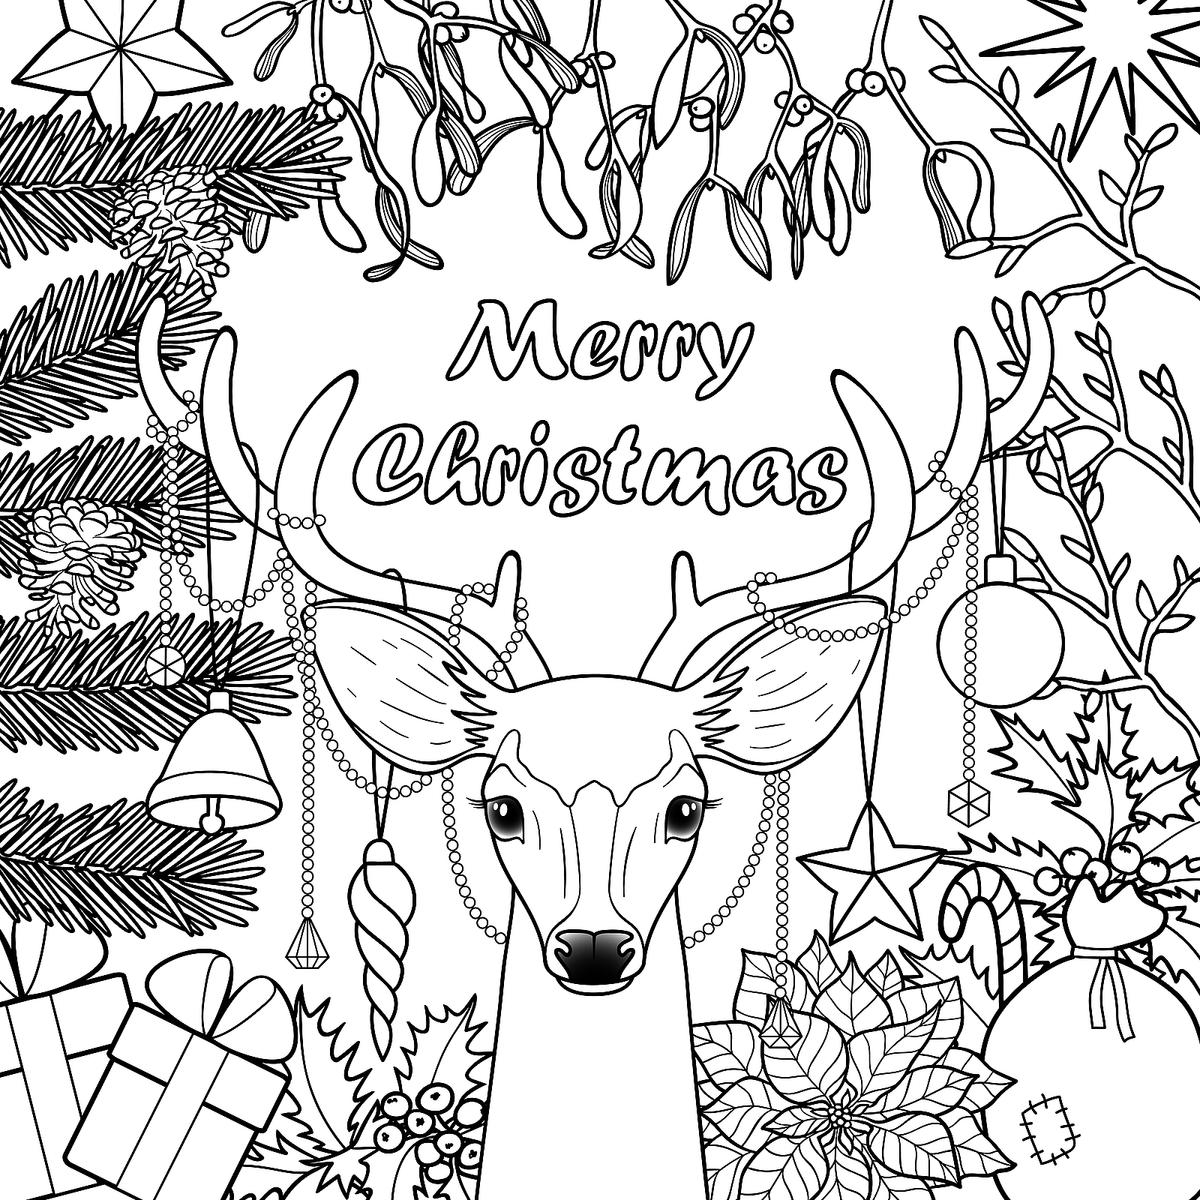 Christmas Coloring Pages Christmas Coloring Pages With Girls Sheets ...